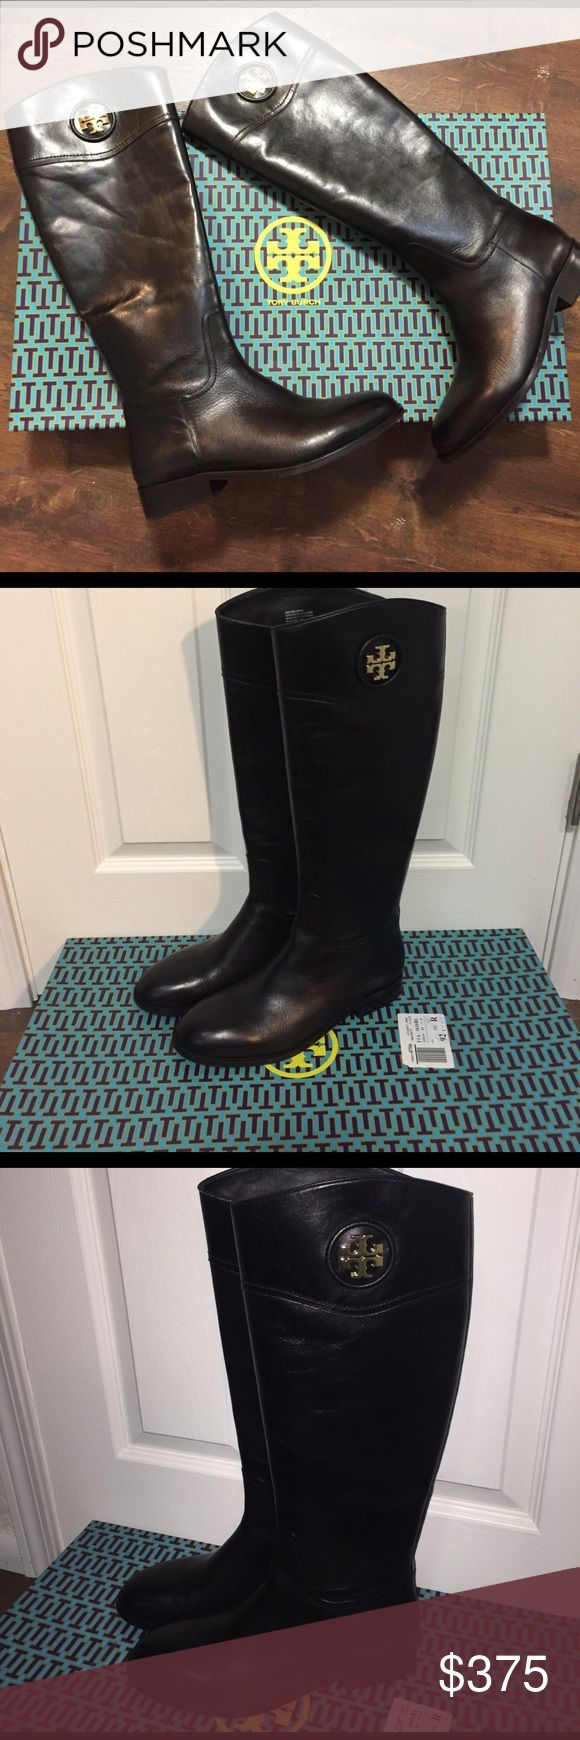 Tory Burch black riding boots-MAKE ME AN OFFER :) New in box, size 10.5 women's boots in black. Gold emblem and zipper pull. Retails for $495! Tory Burch Shoes Combat & Moto Boots